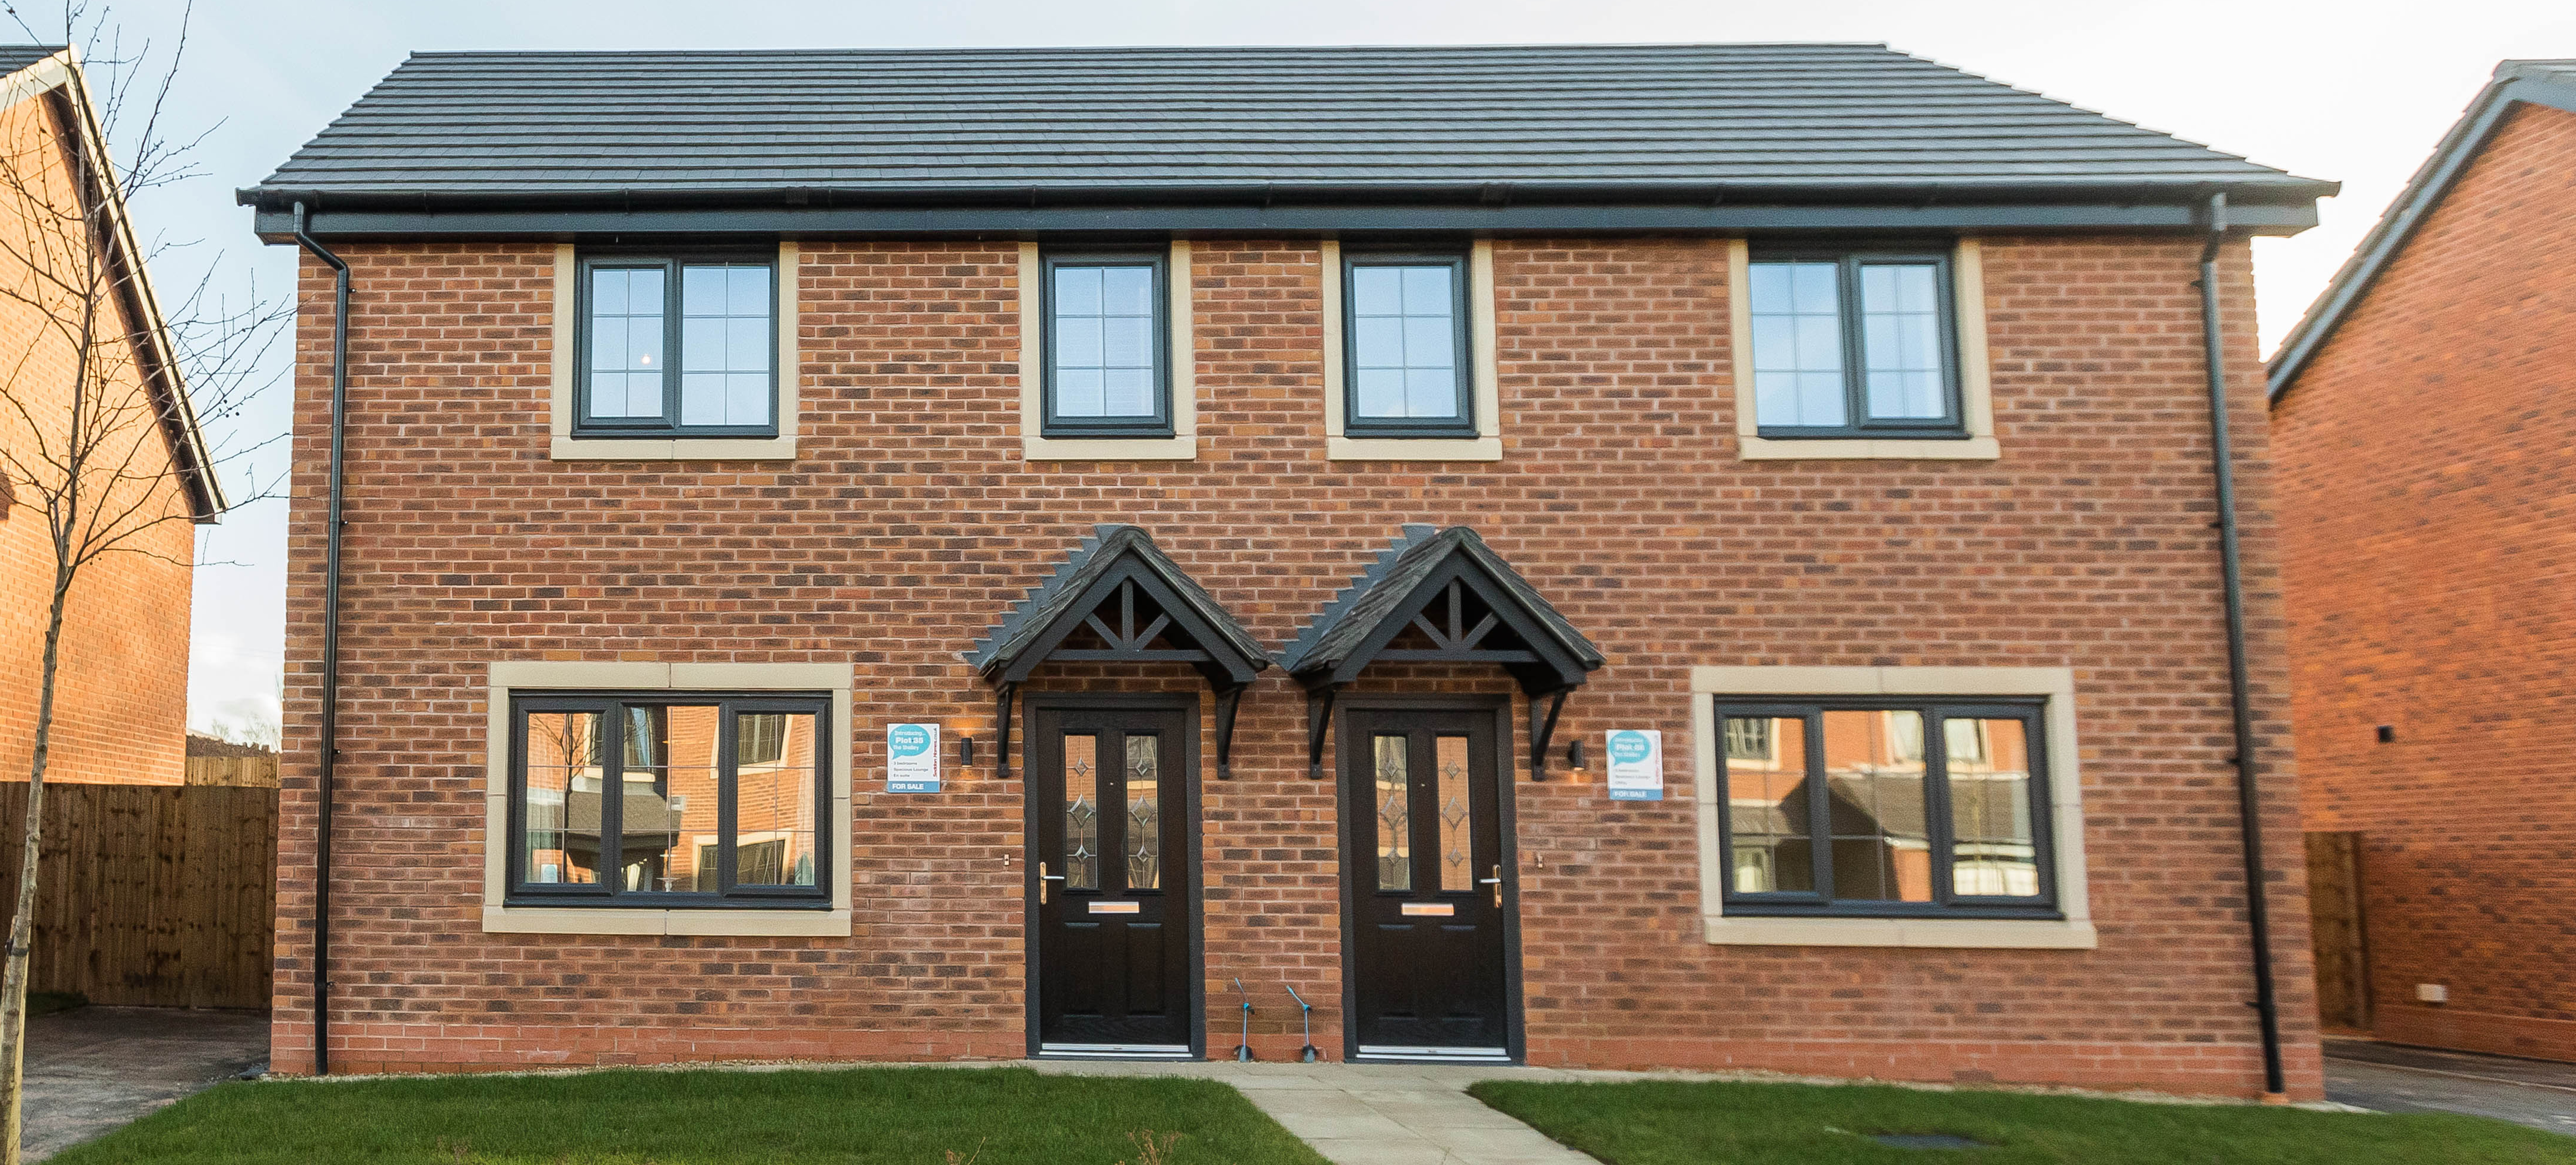 How to afford a home in Cheshire | Featured Image